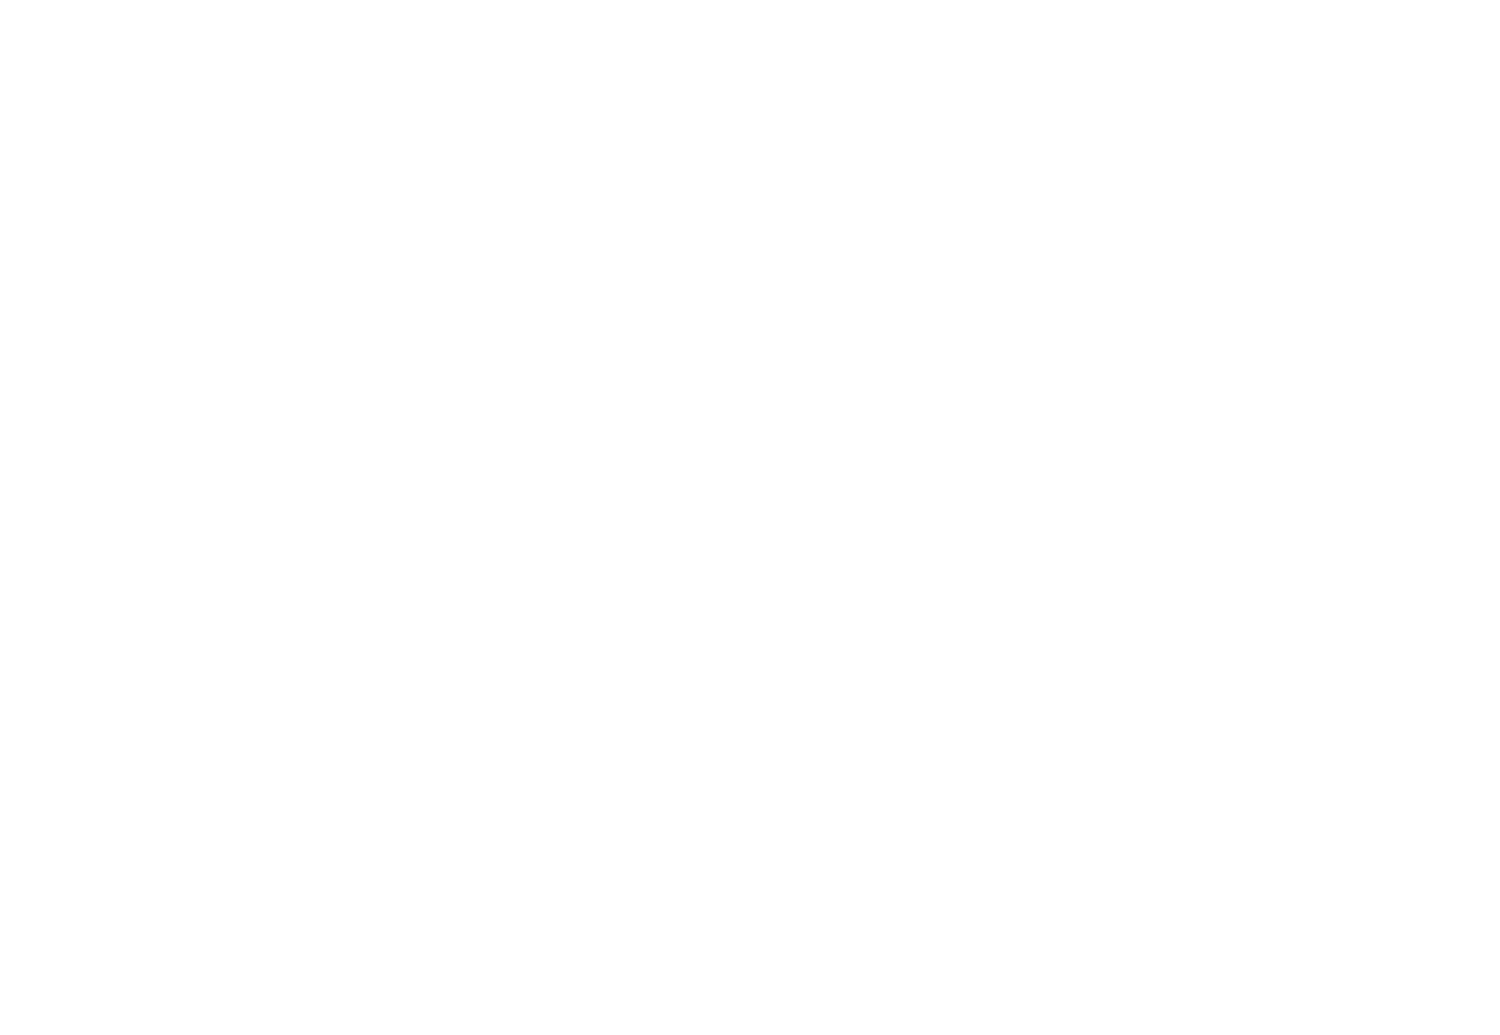 Knutsford Beer Festival